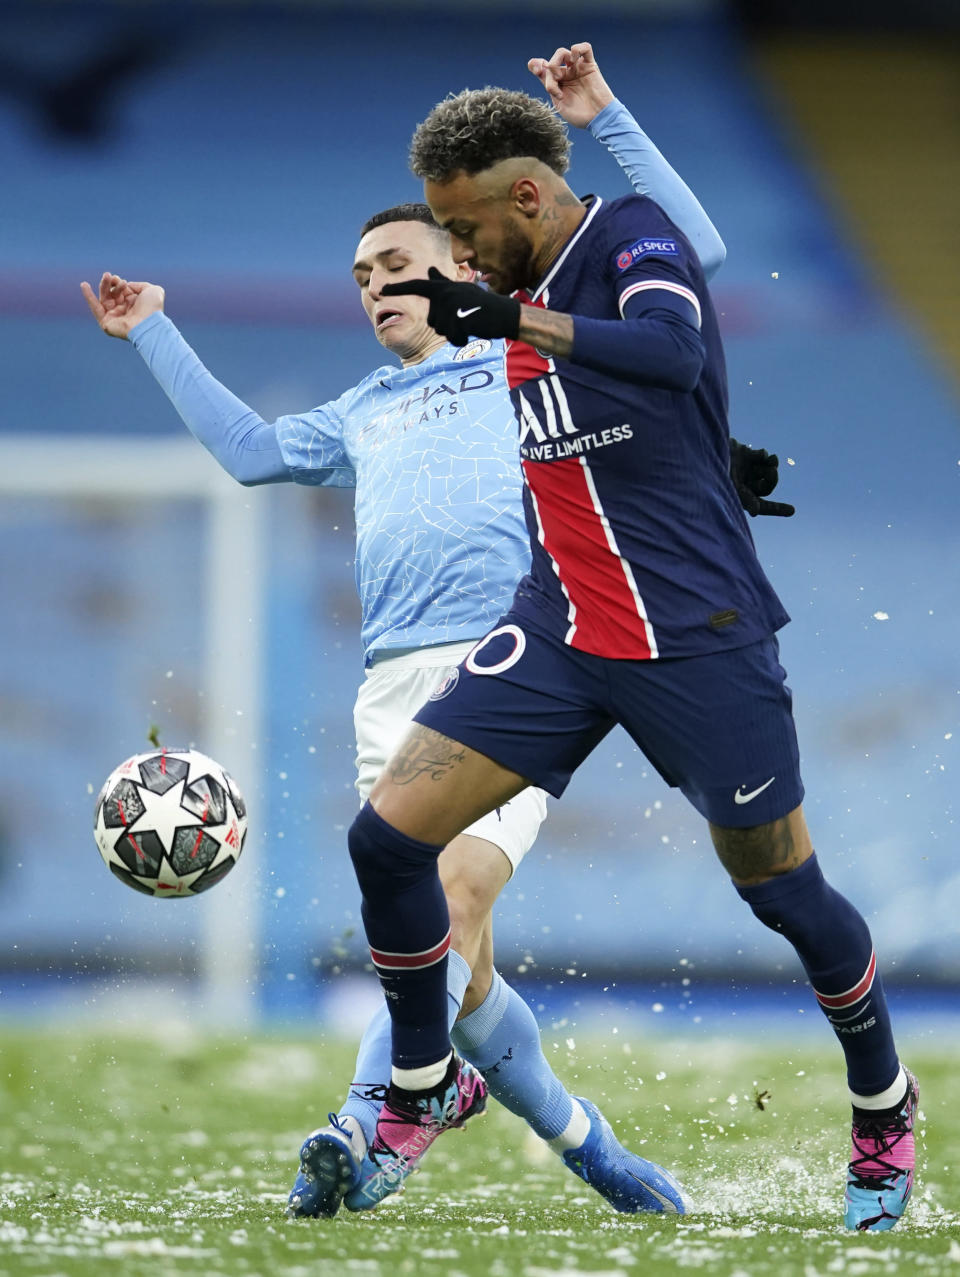 Manchester City's Phil Foden, left, challenges PSG's Neymar during the Champions League semifinal second leg soccer match between Manchester City and Paris Saint Germain at the Etihad stadium, in Manchester, Tuesday, May 4, 2021. (AP Photo/Dave Thompson)